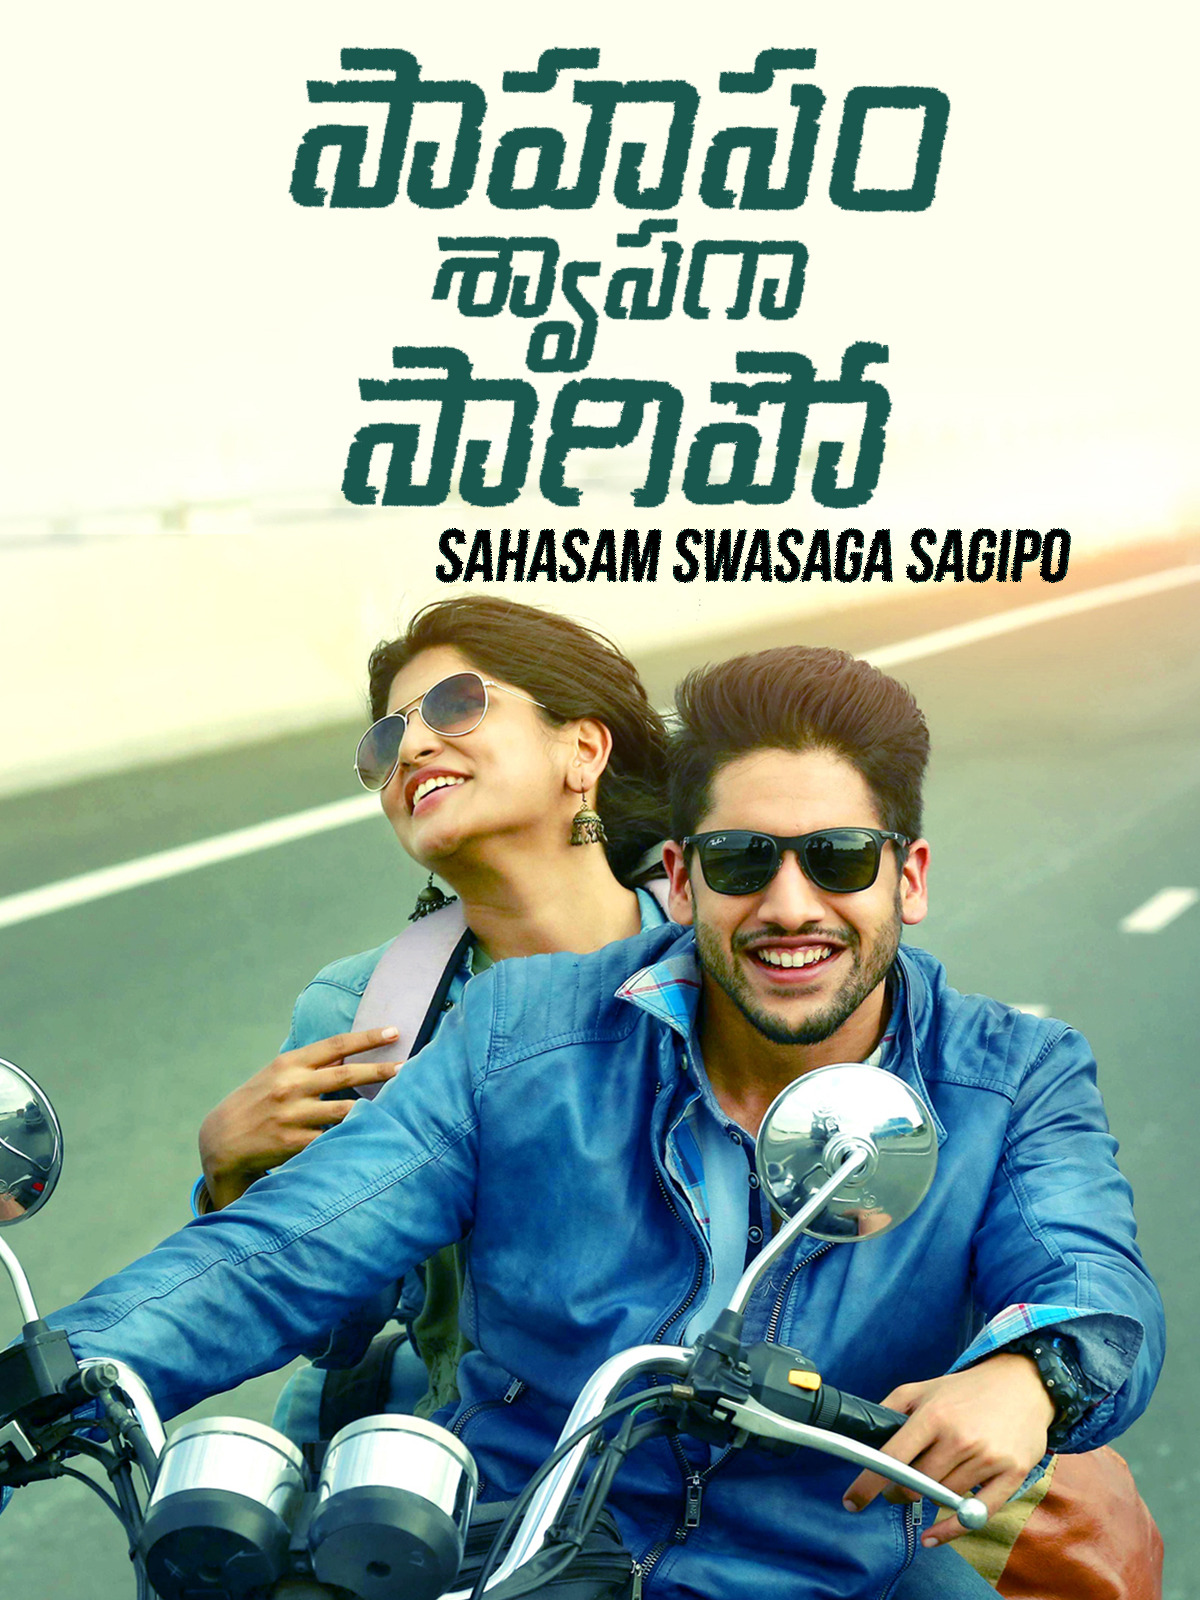 Saahasam Swaasaga Saagipo (2021) Hindi Dubbed Movie HDRip 720p AAC